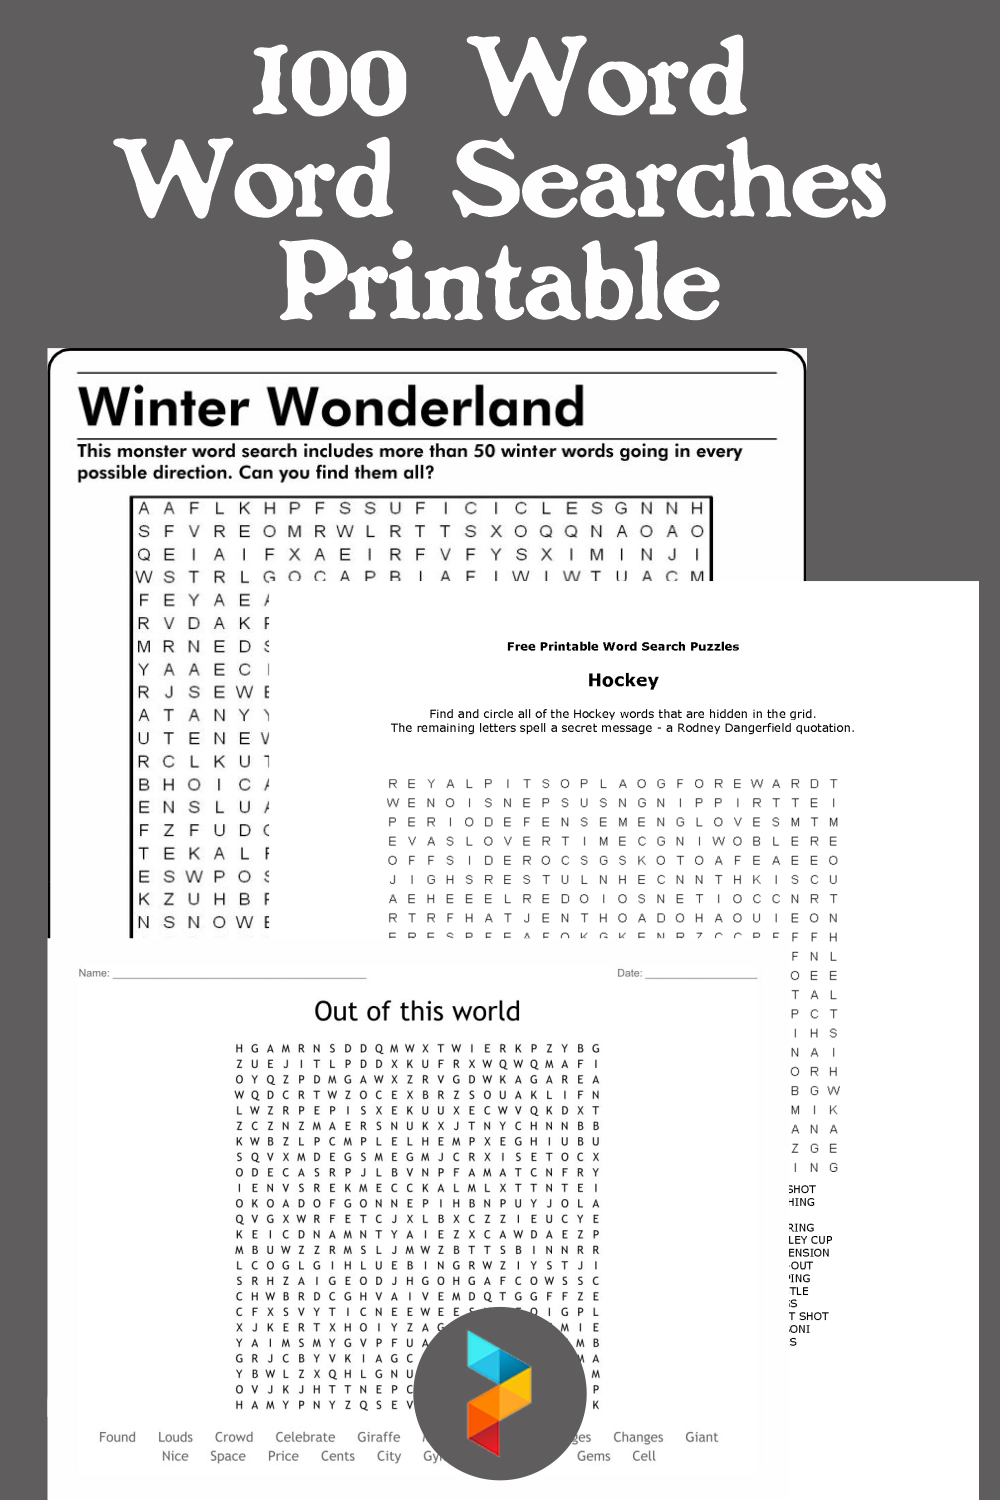 100 Word Word Searches Printable